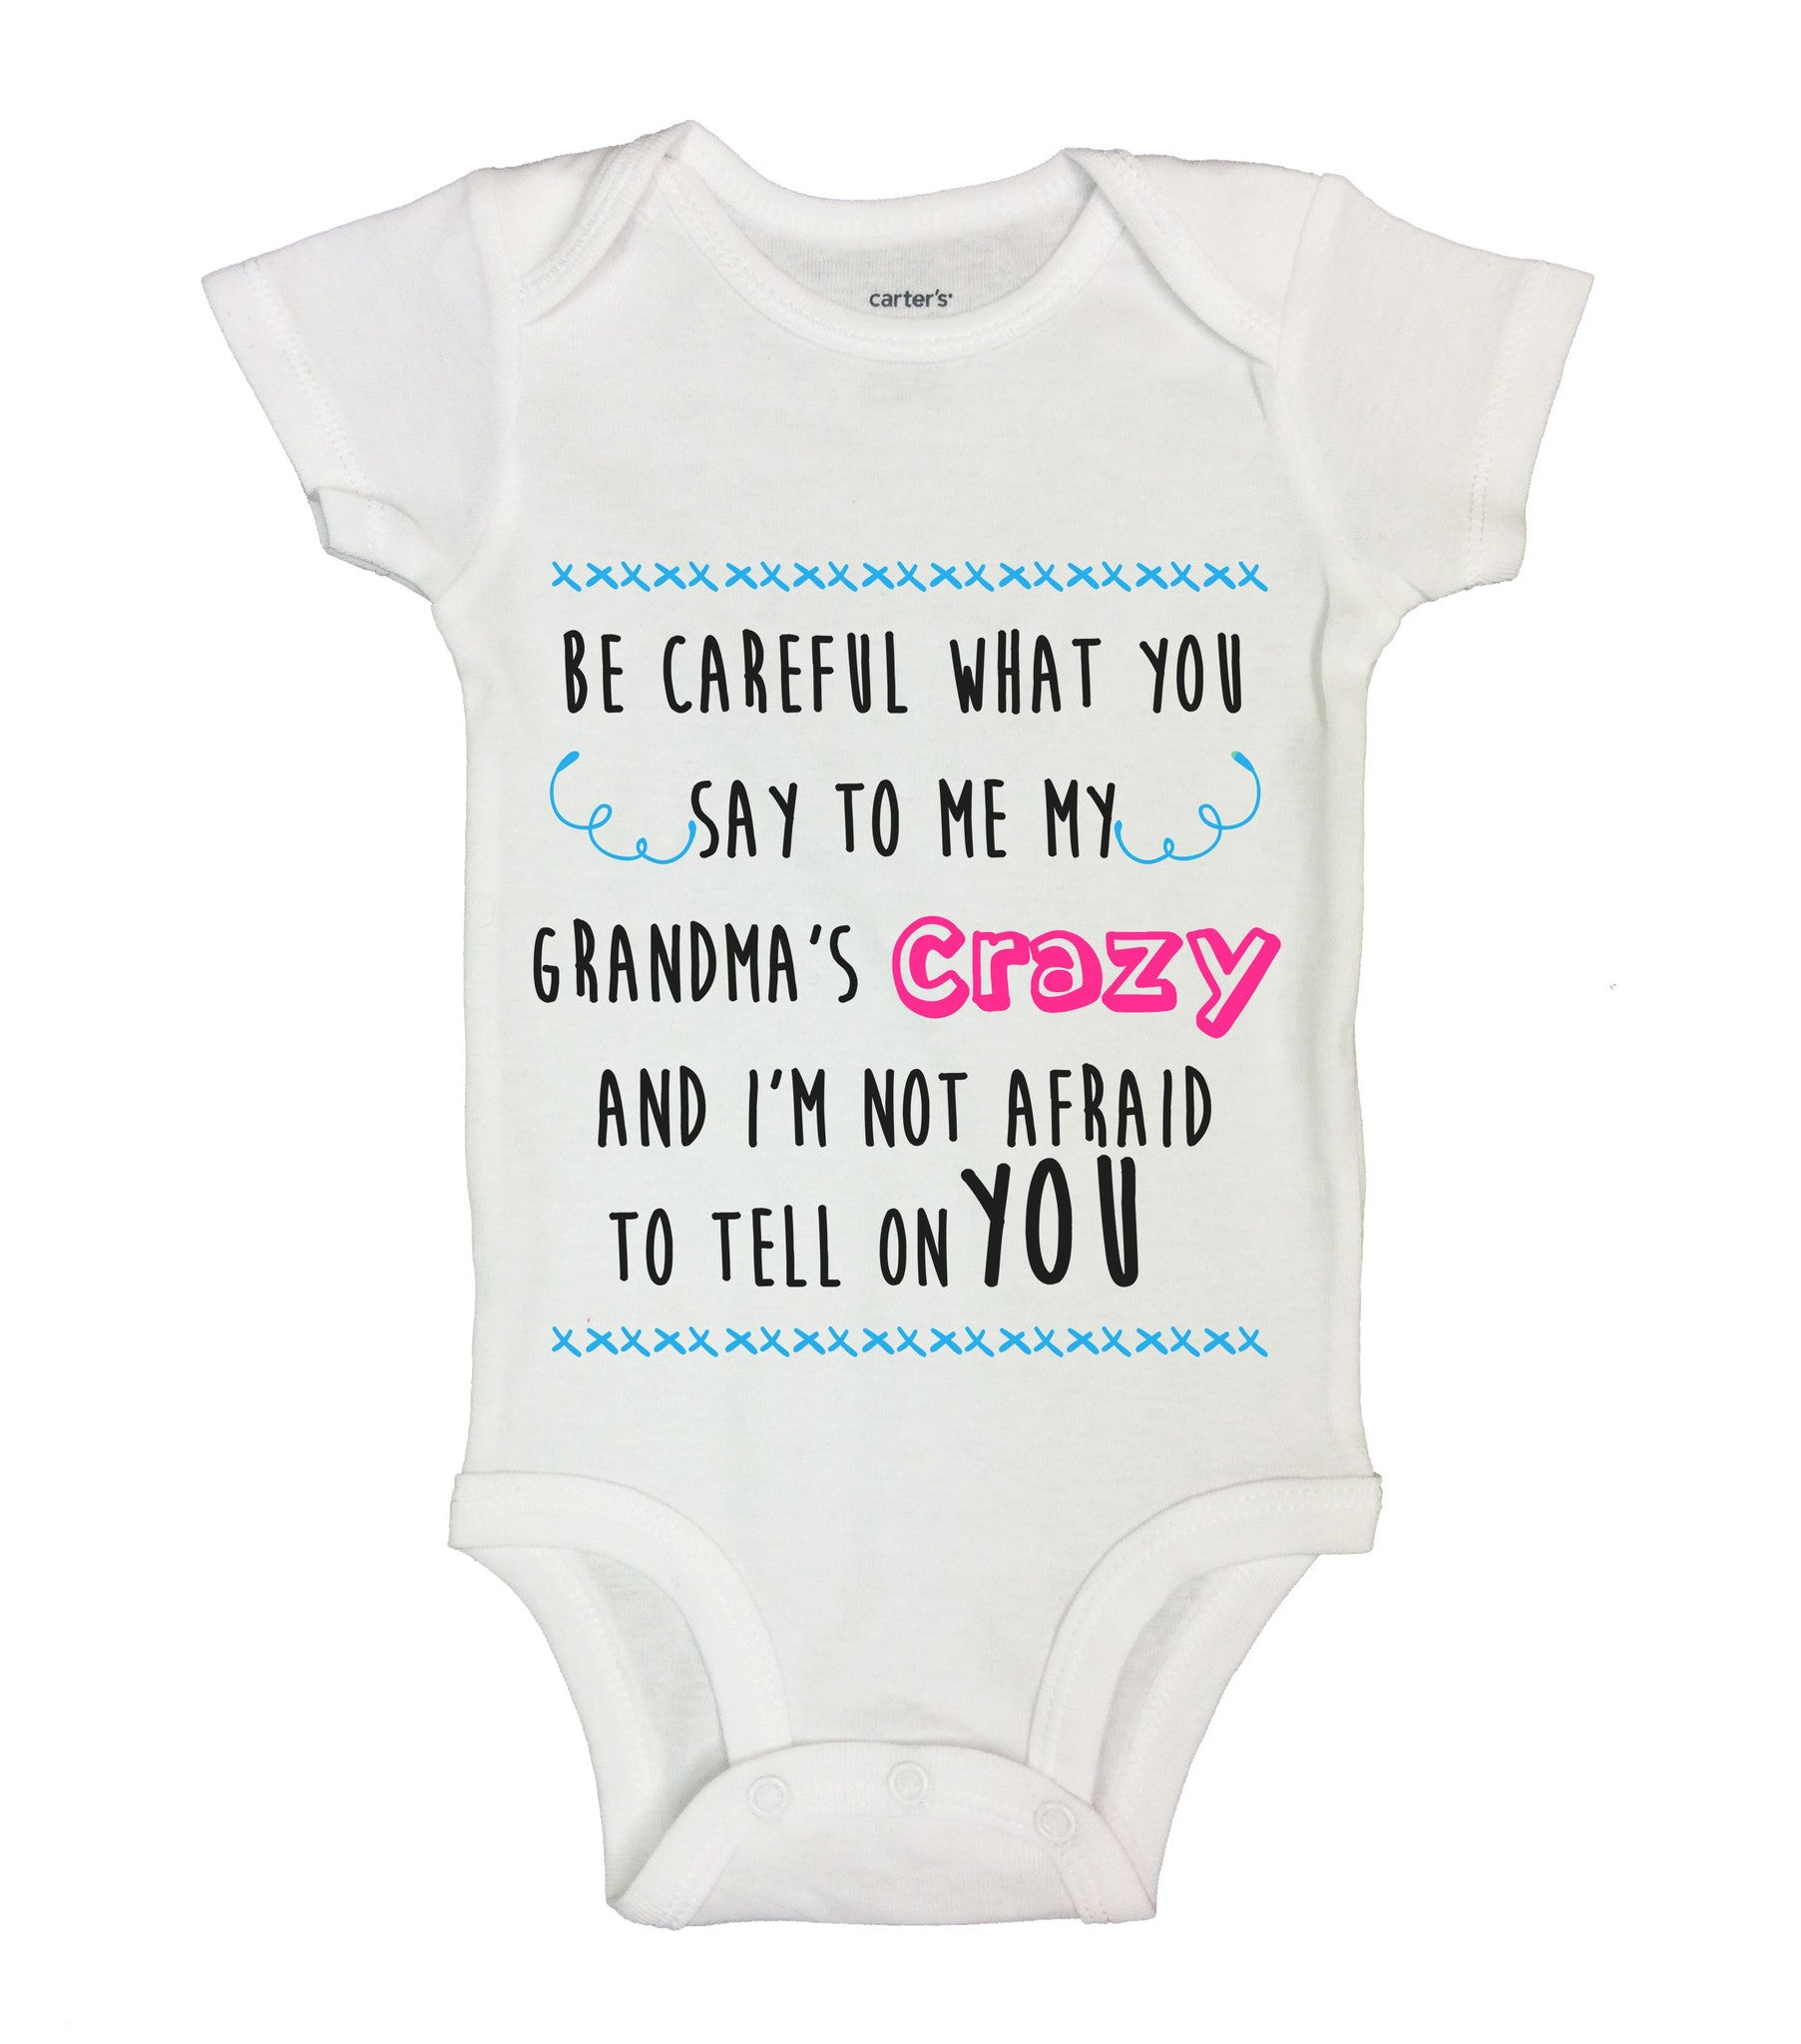 Be Careful What You Say To Me My Grandma's Crazy And I'm Not Afraid To Tell On You Funny Kids Onesie - B125 - Funny Shirts Tank Tops Burnouts and Triblends  - 1